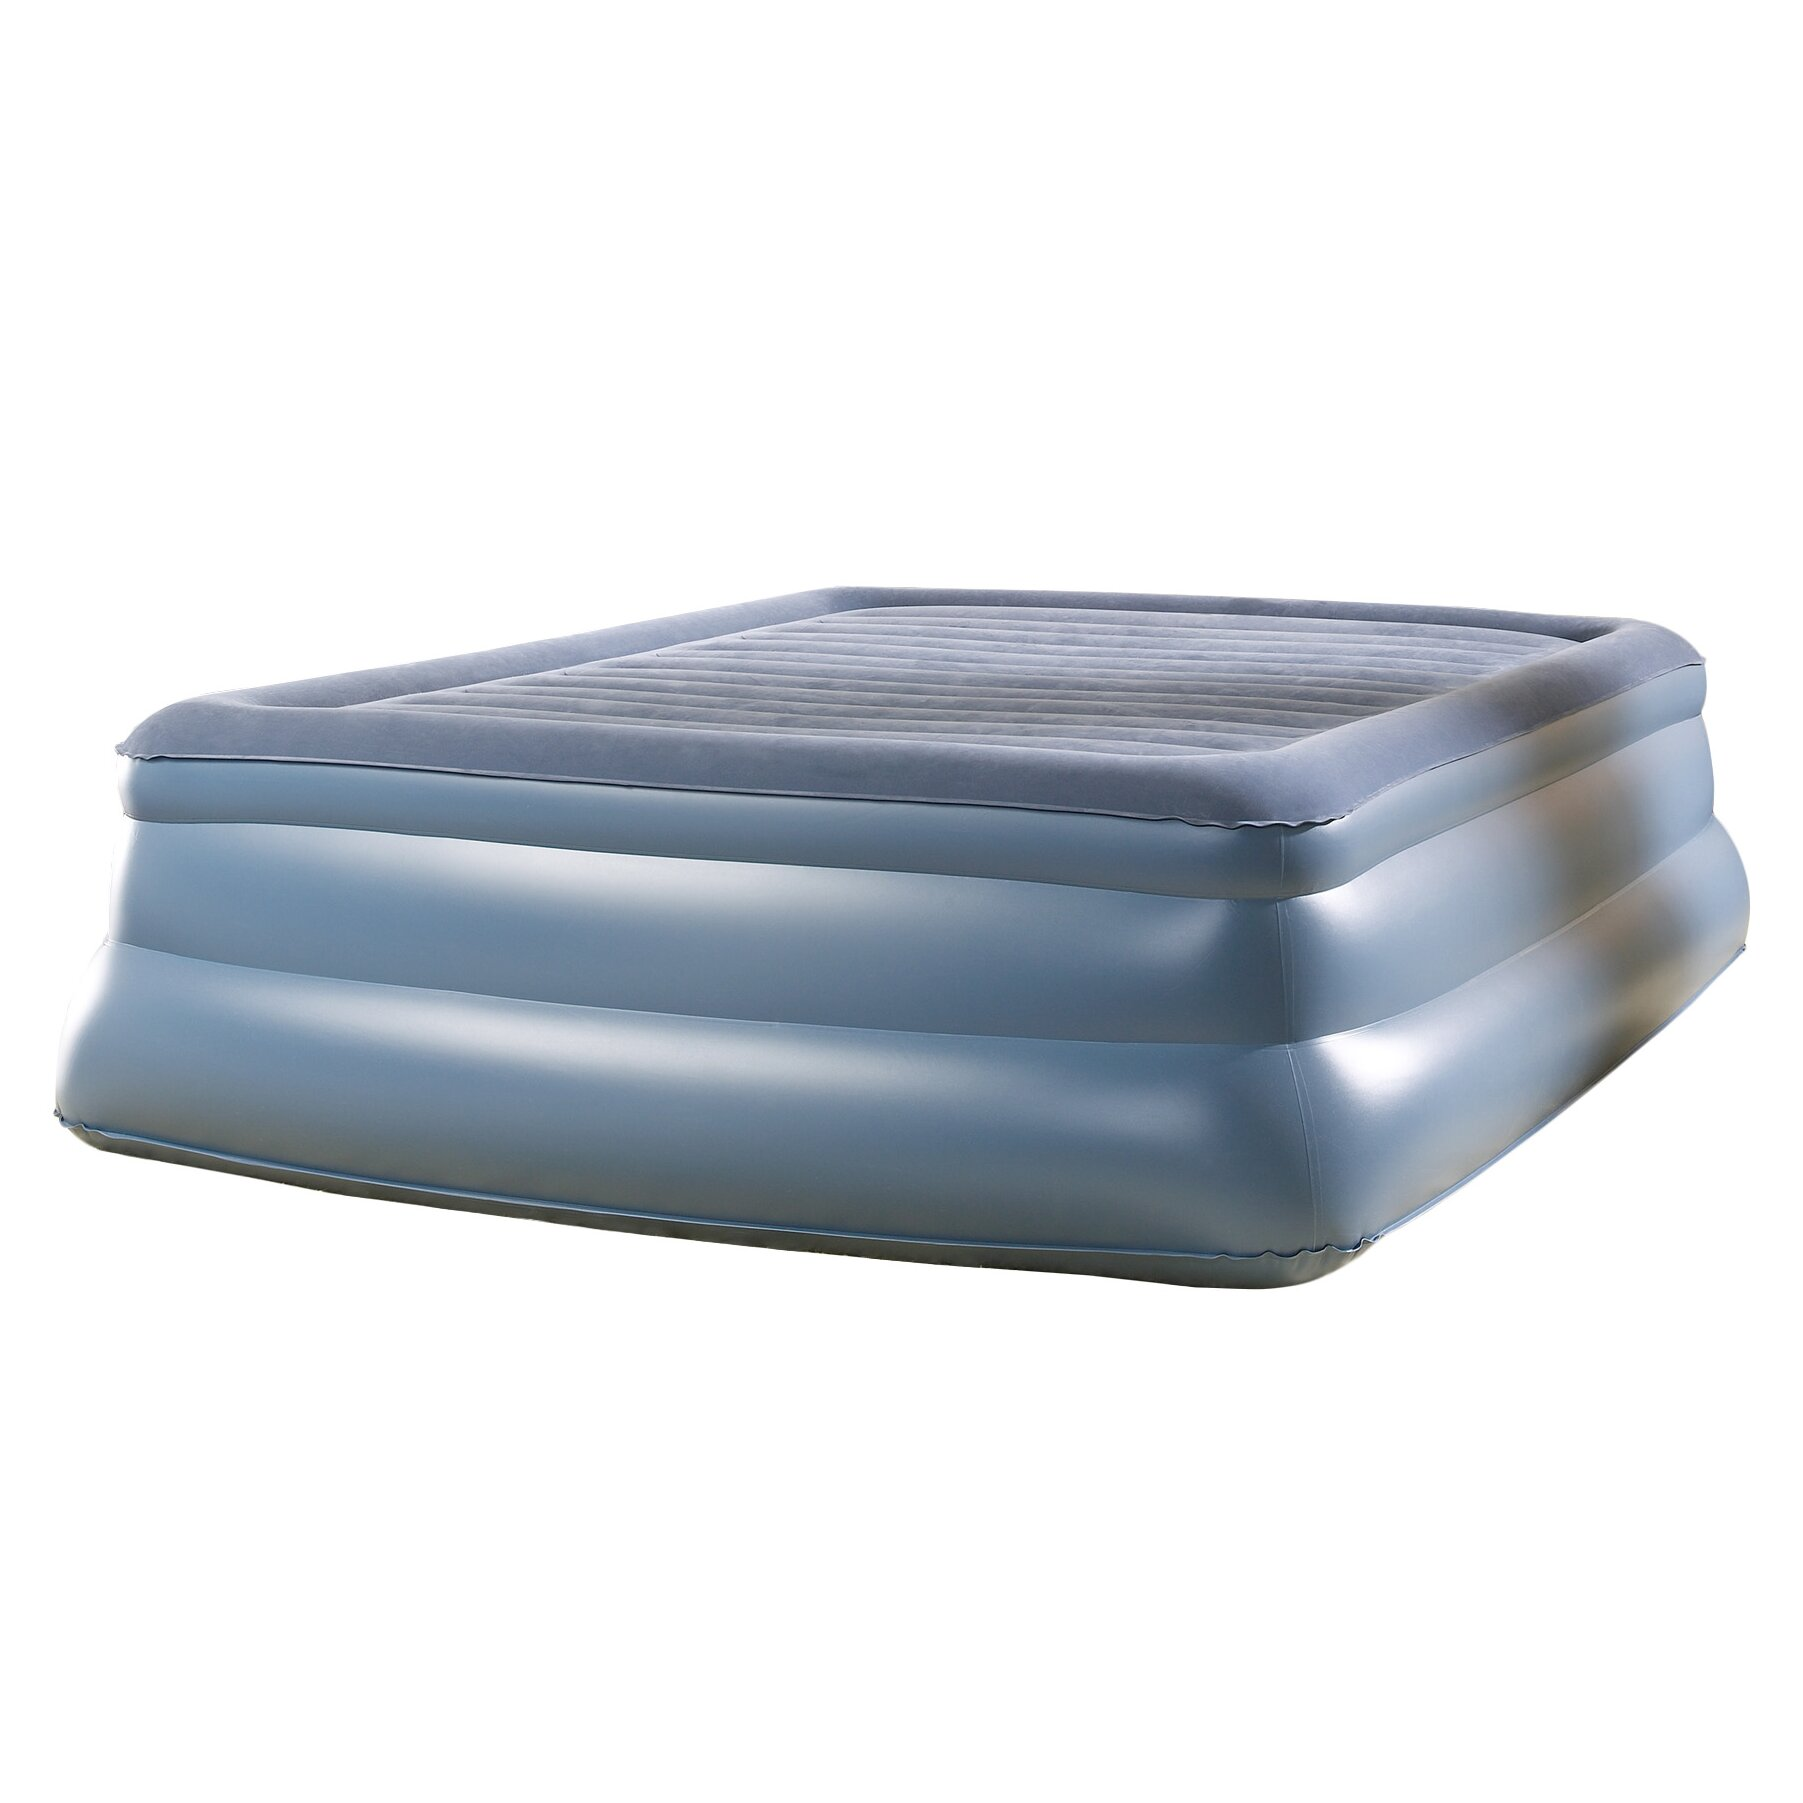 Simmons Beautyrest Air Mattress Reviews Wayfair